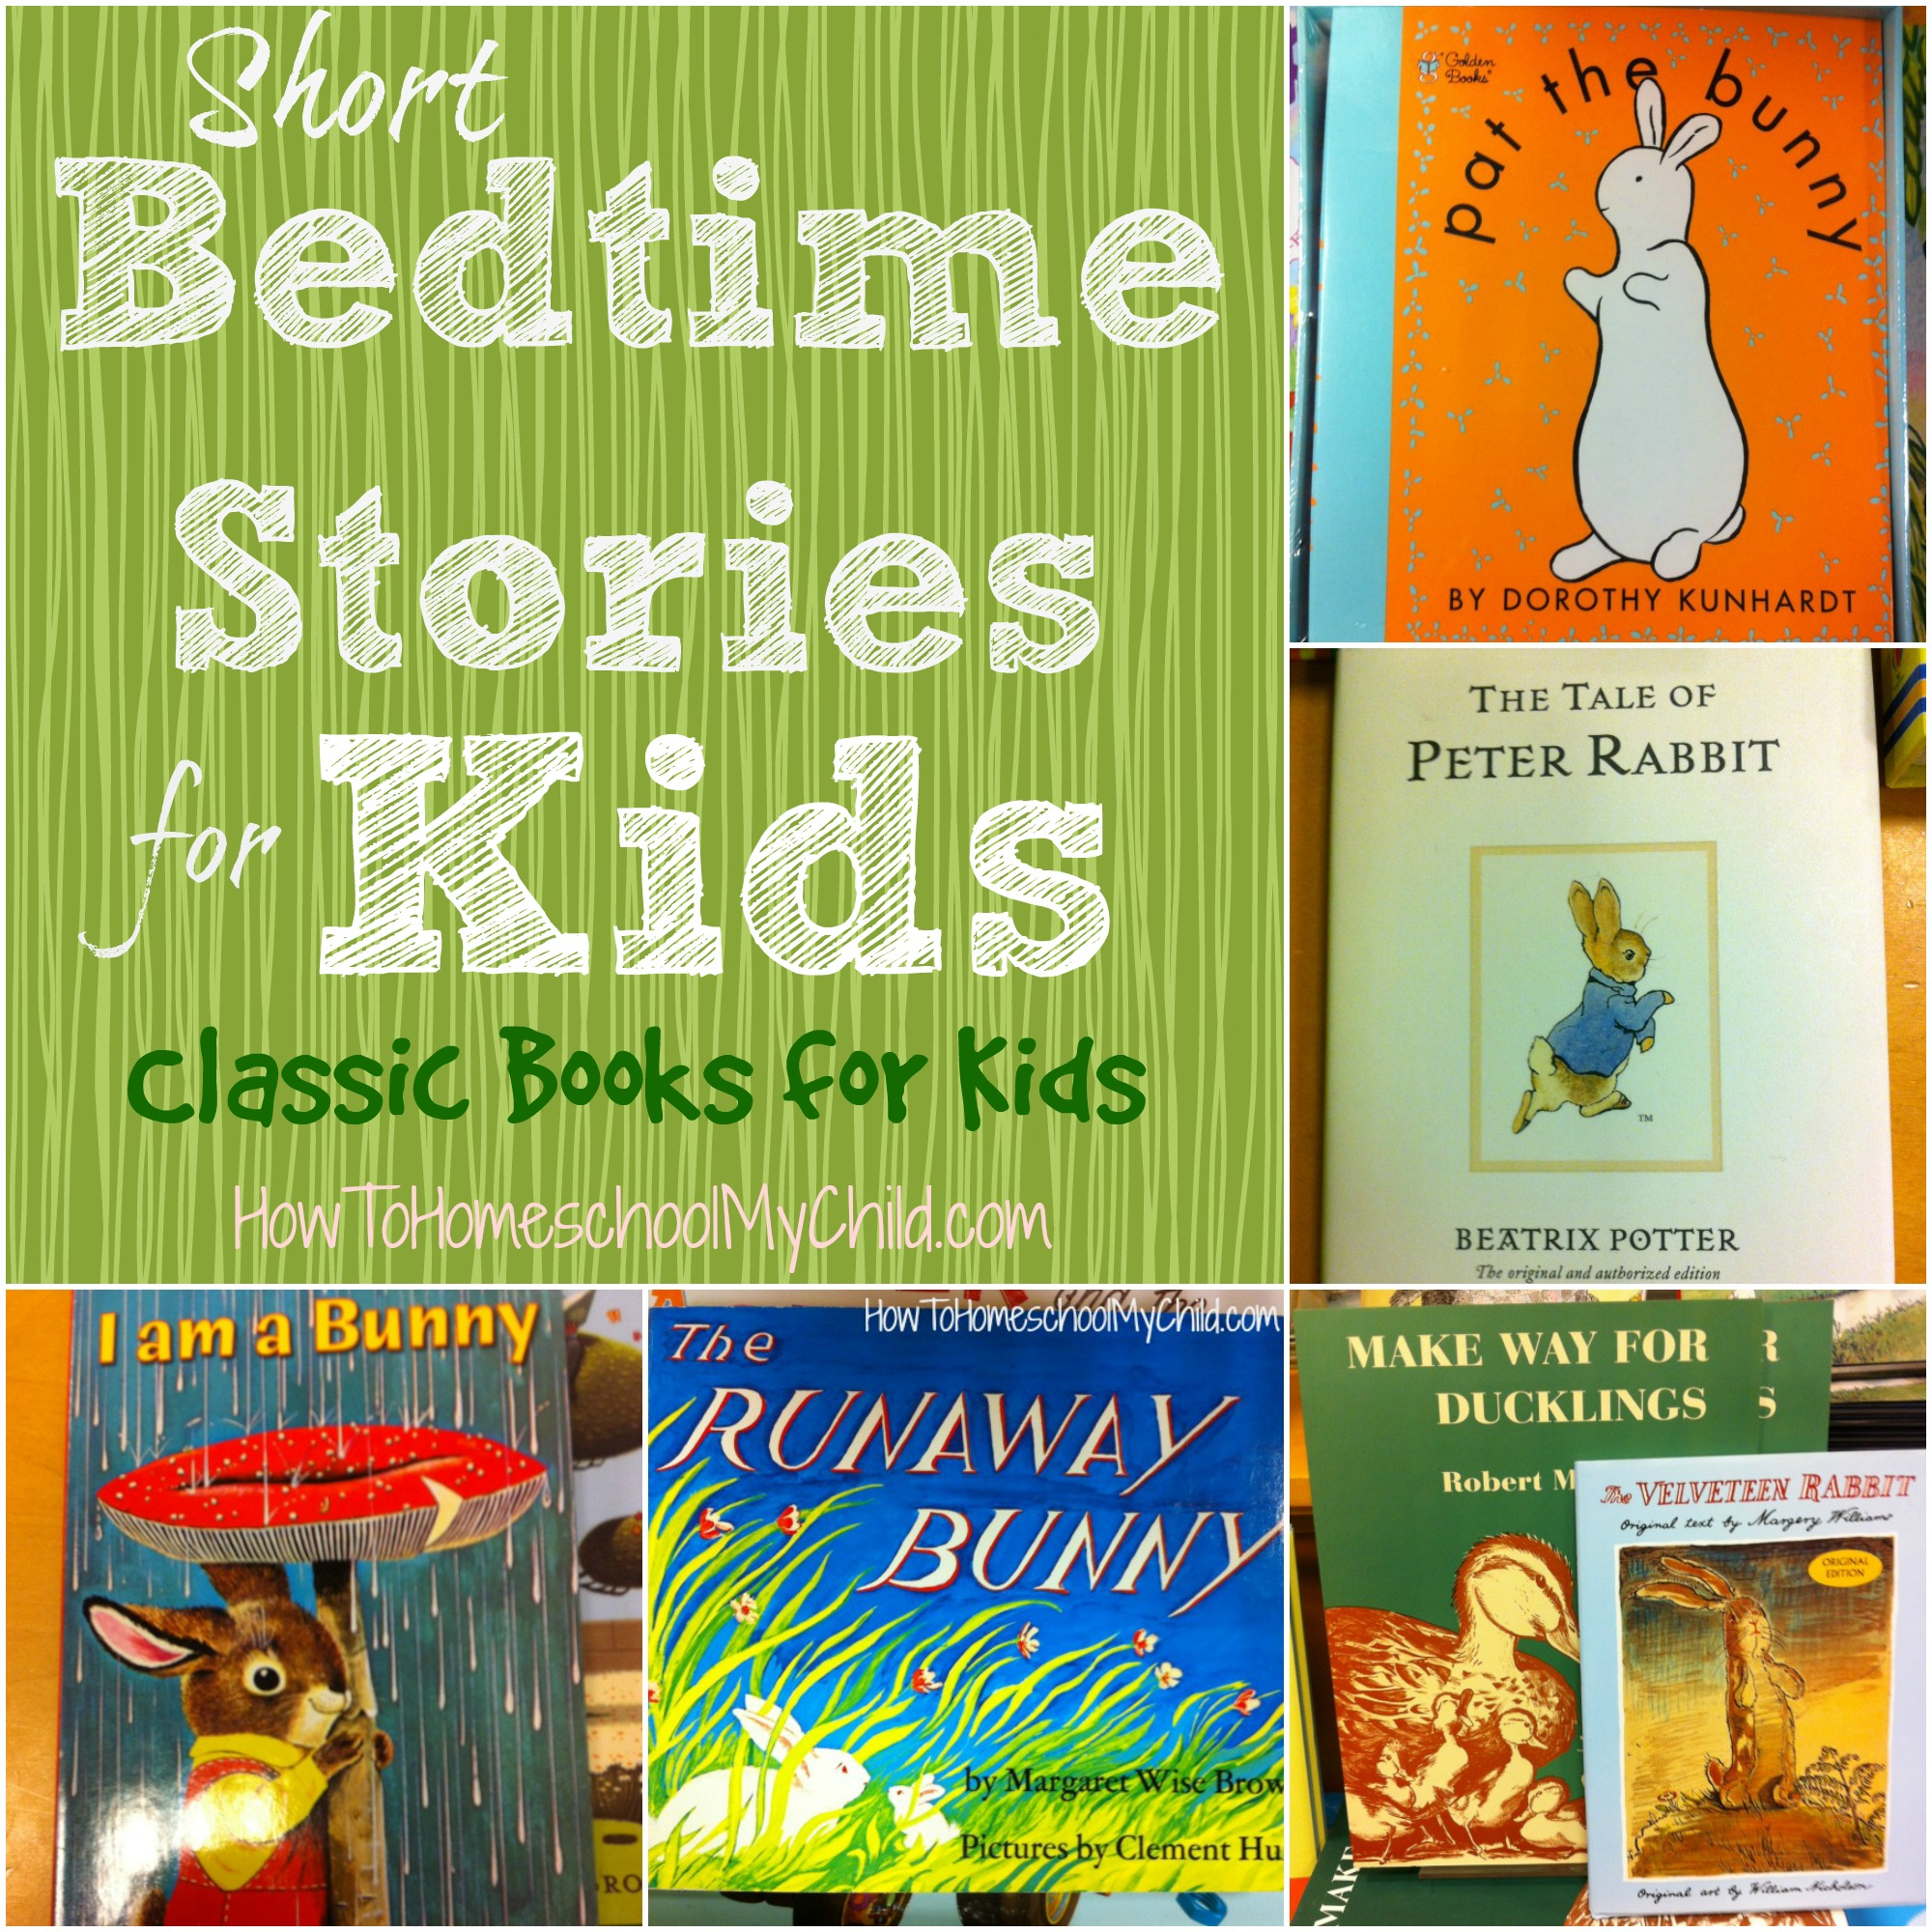 Bedtime Story. Short Story For Kids. View Original . [Updated on 12/2 ...